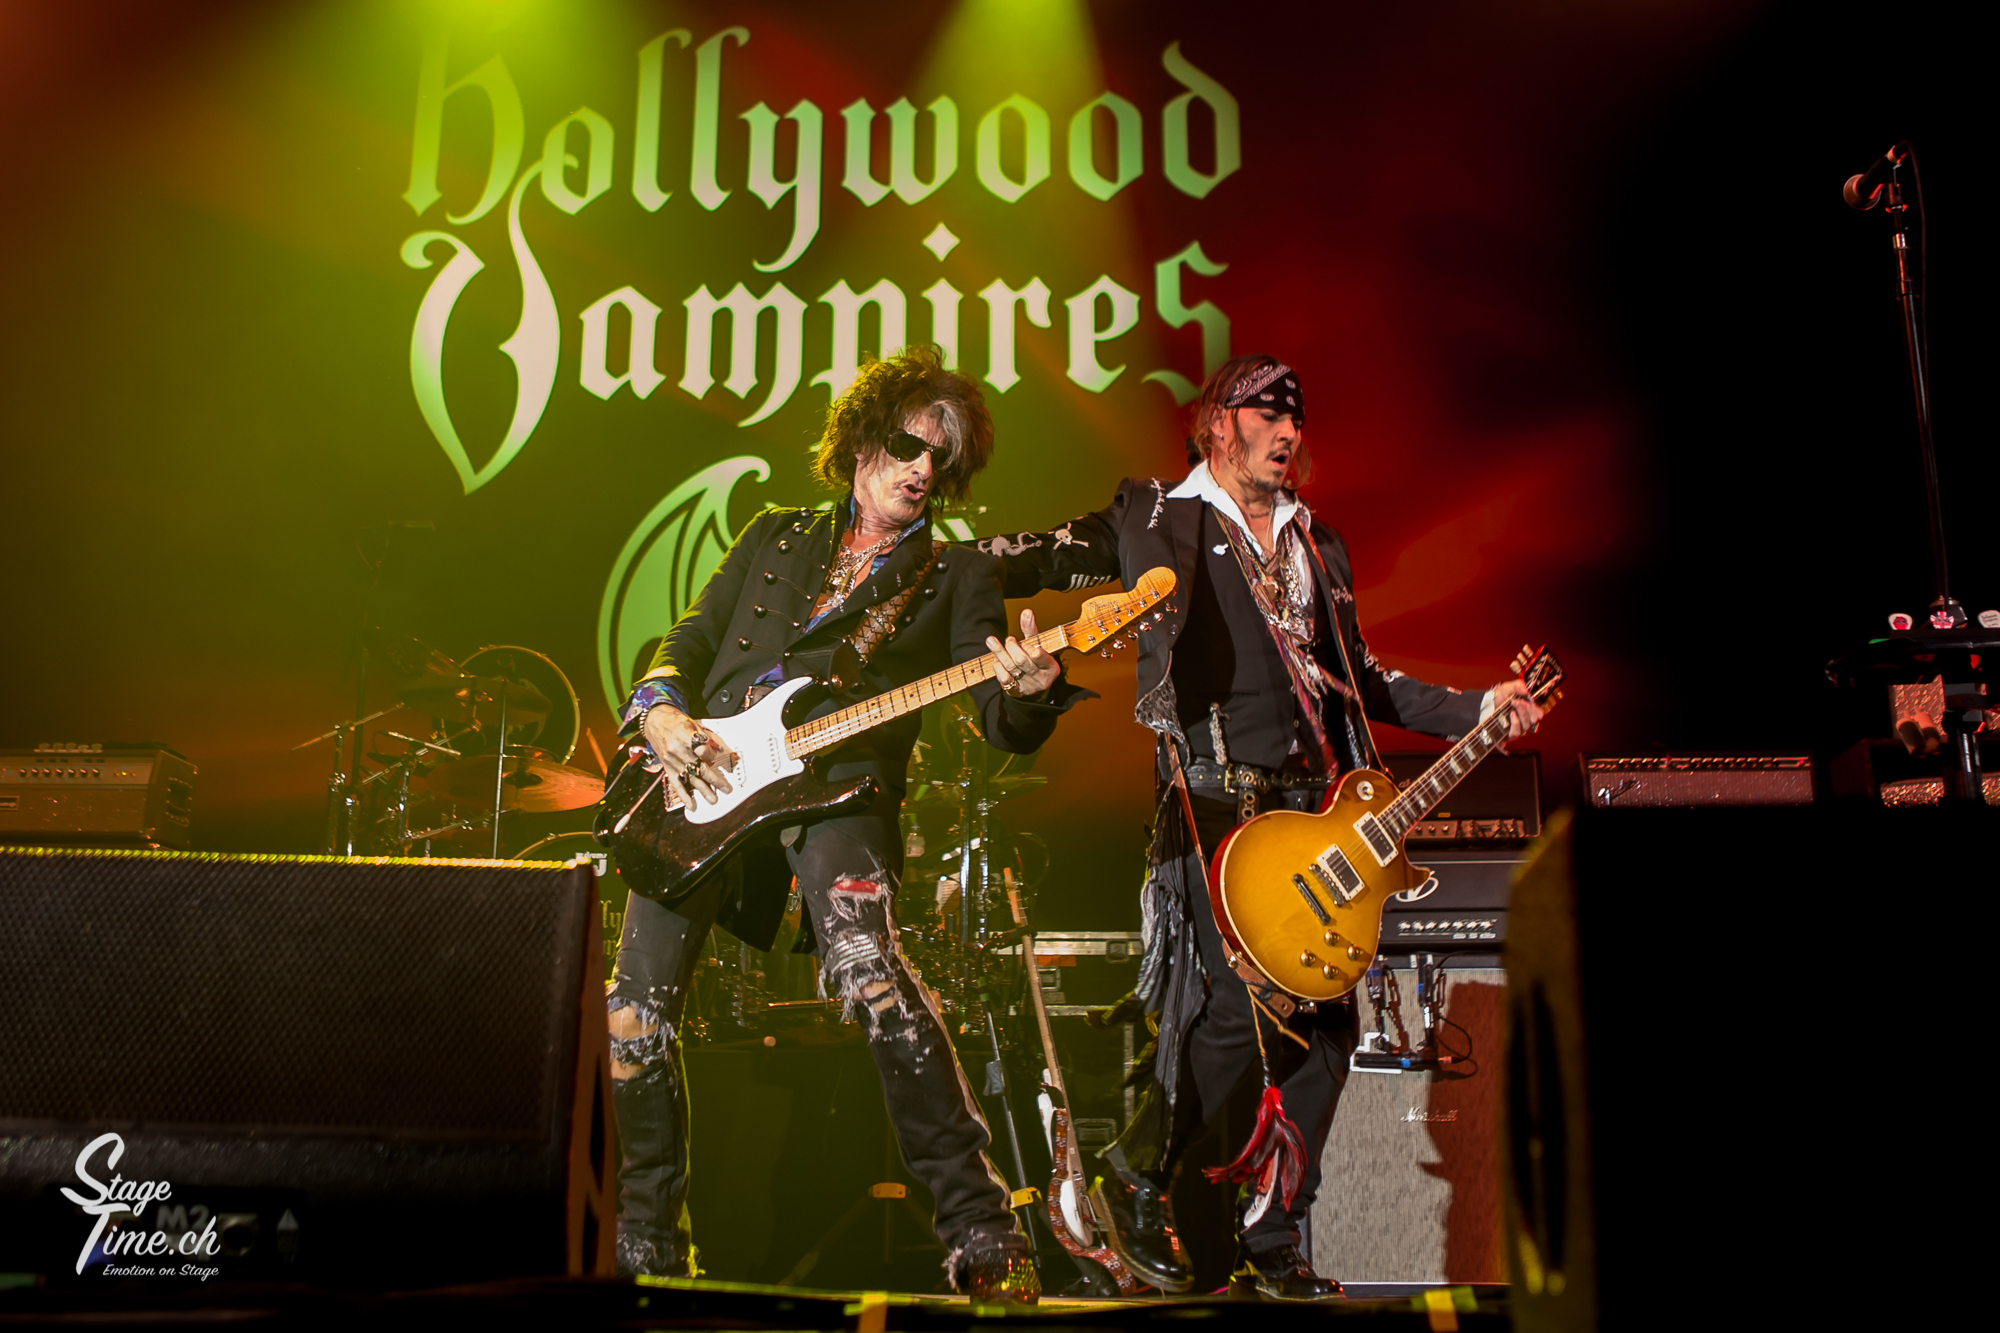 V.l.n.r.-_Joe_Perry_&Johnny_Depp___Hollywood_Vampires